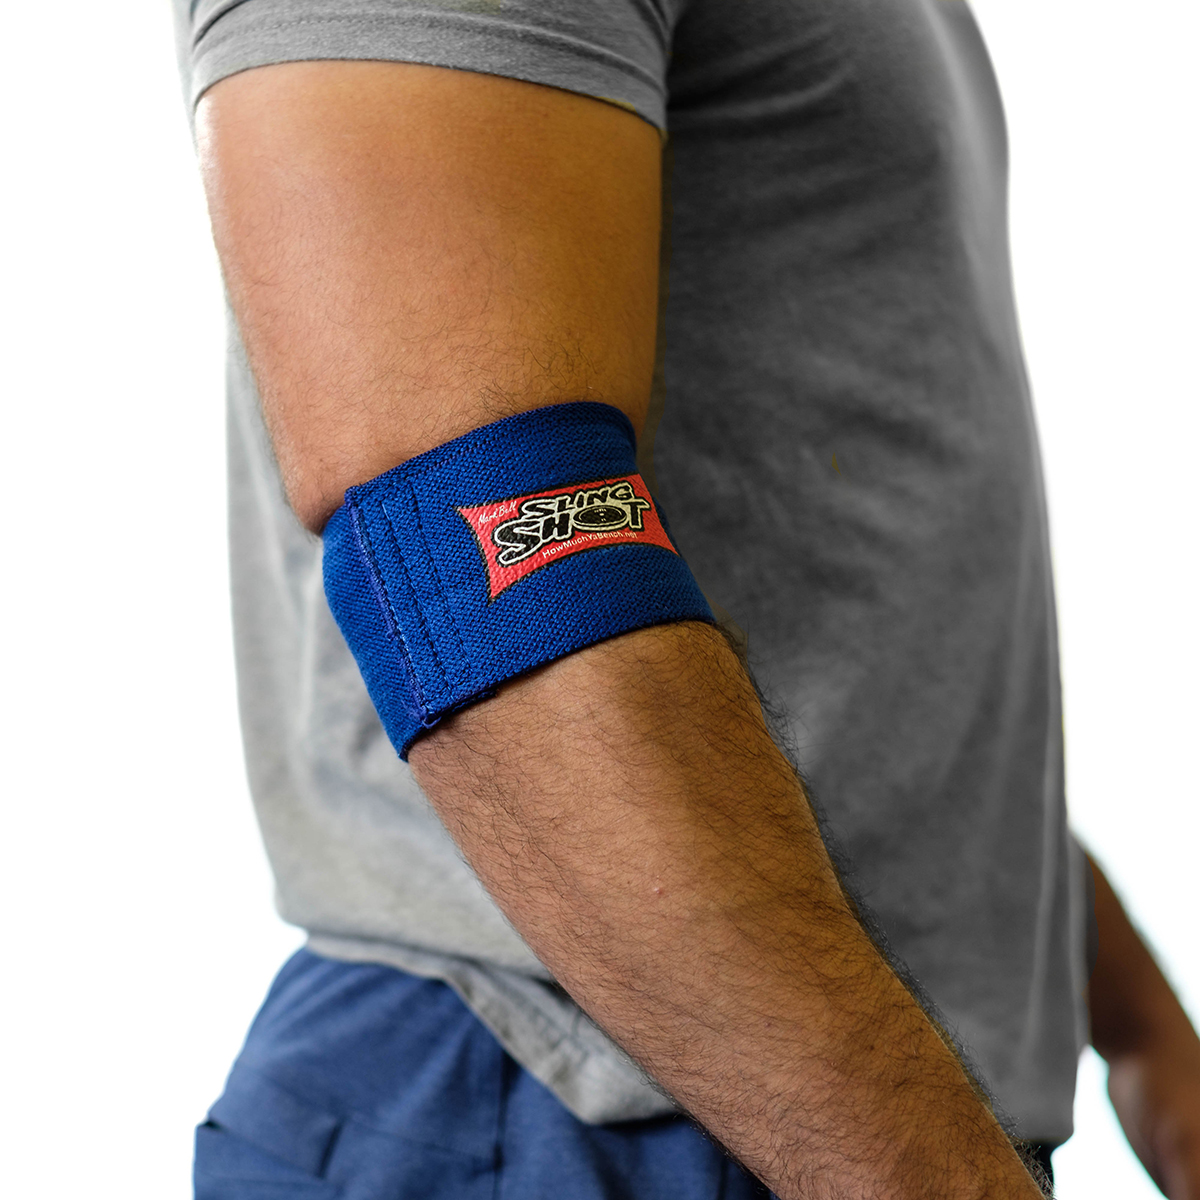 Sling-Shot-Compression-Cuff-Upper-Body-by-Mark-Bell-Elastic-joint-support-band thumbnail 7